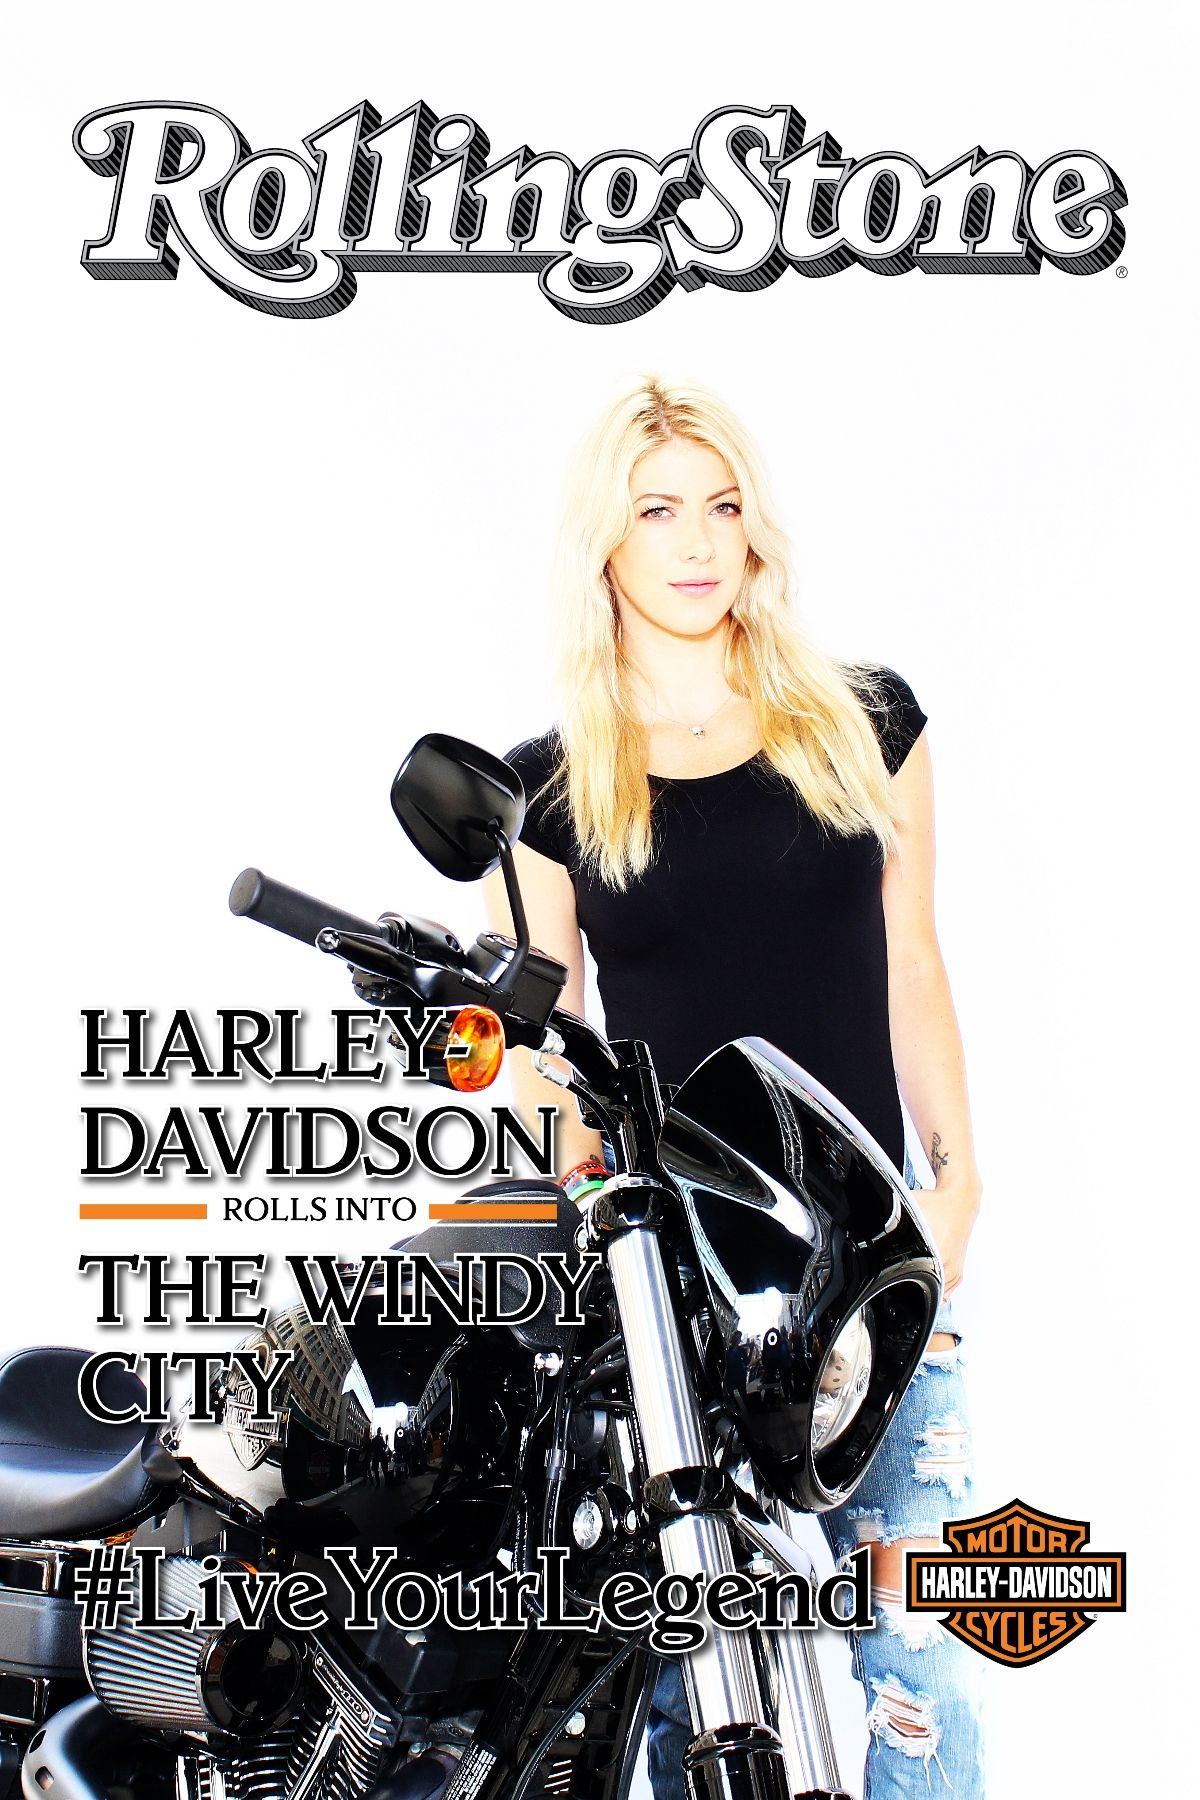 Harley Davidson Interactive Photo Booth